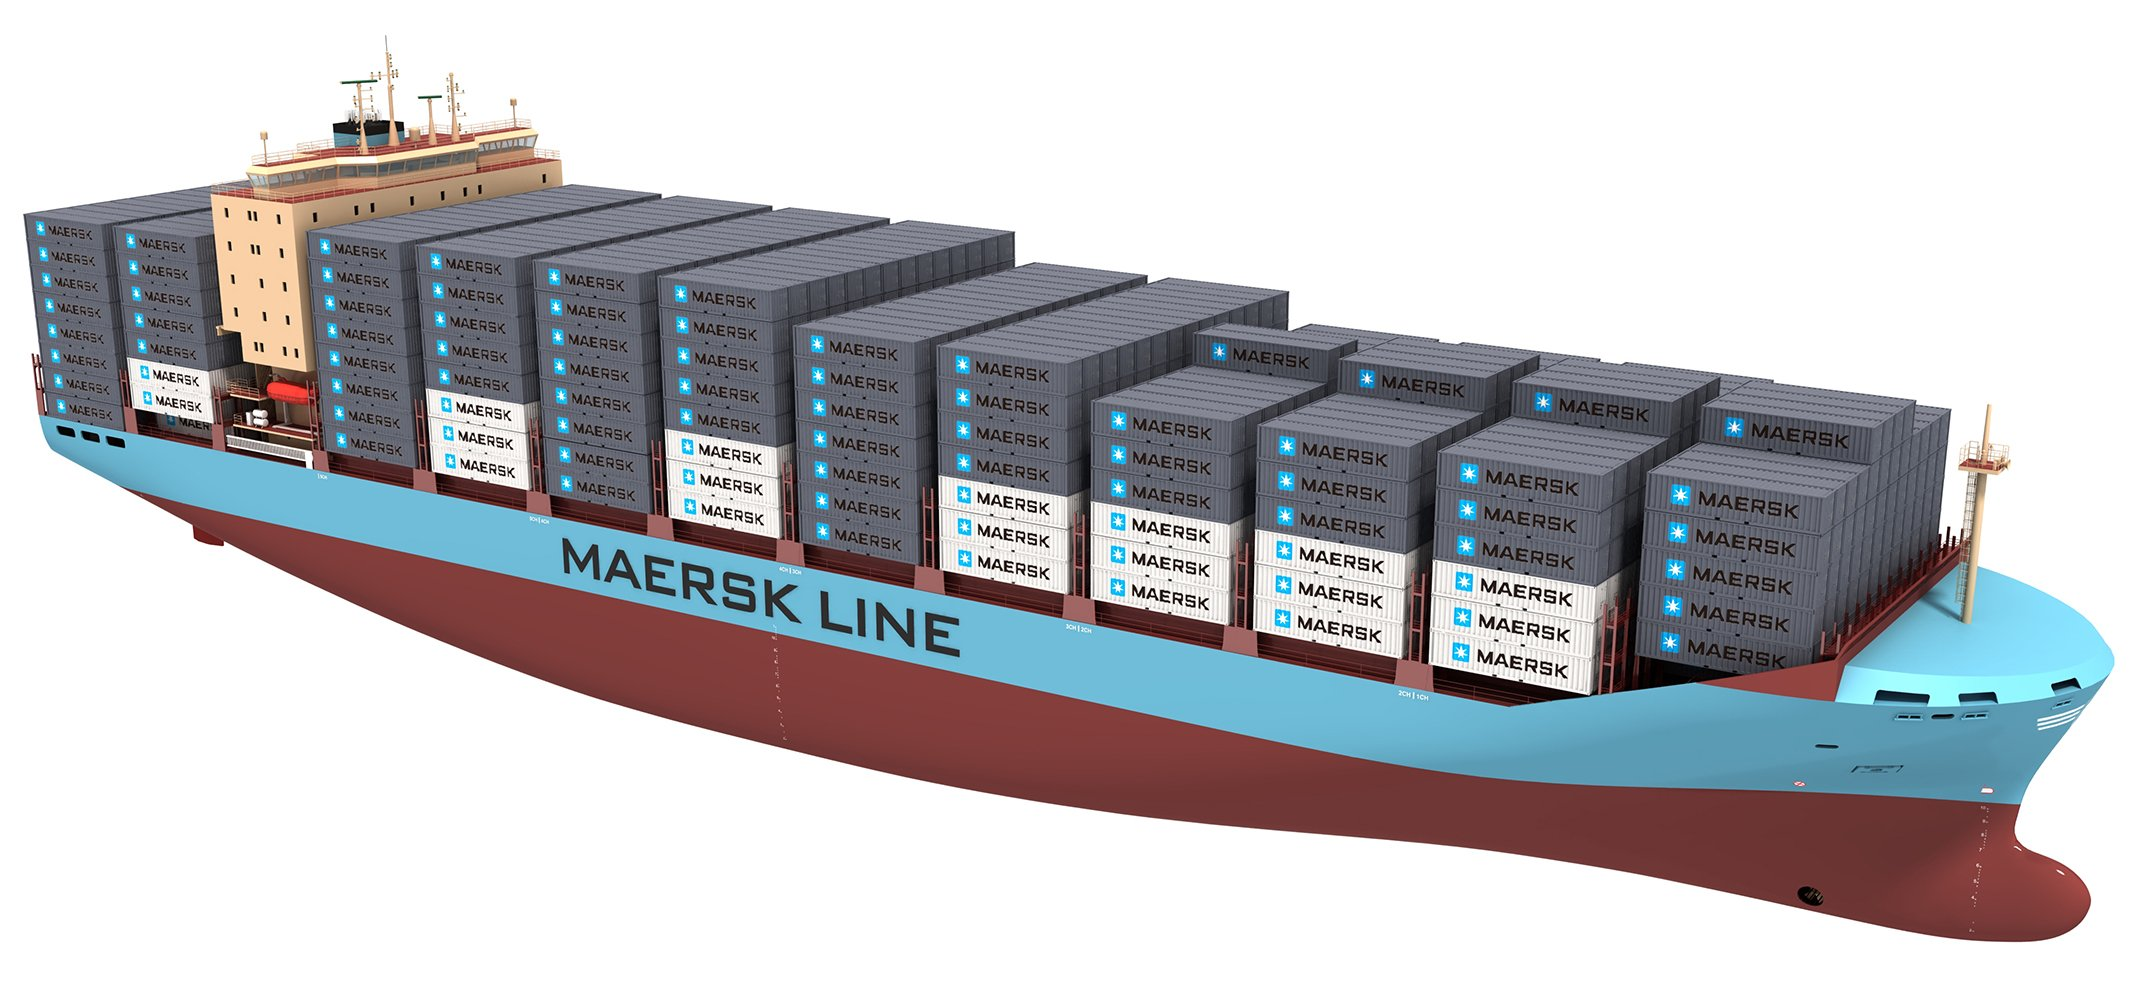 maersk_line_3600_teu_container_ship.jpg